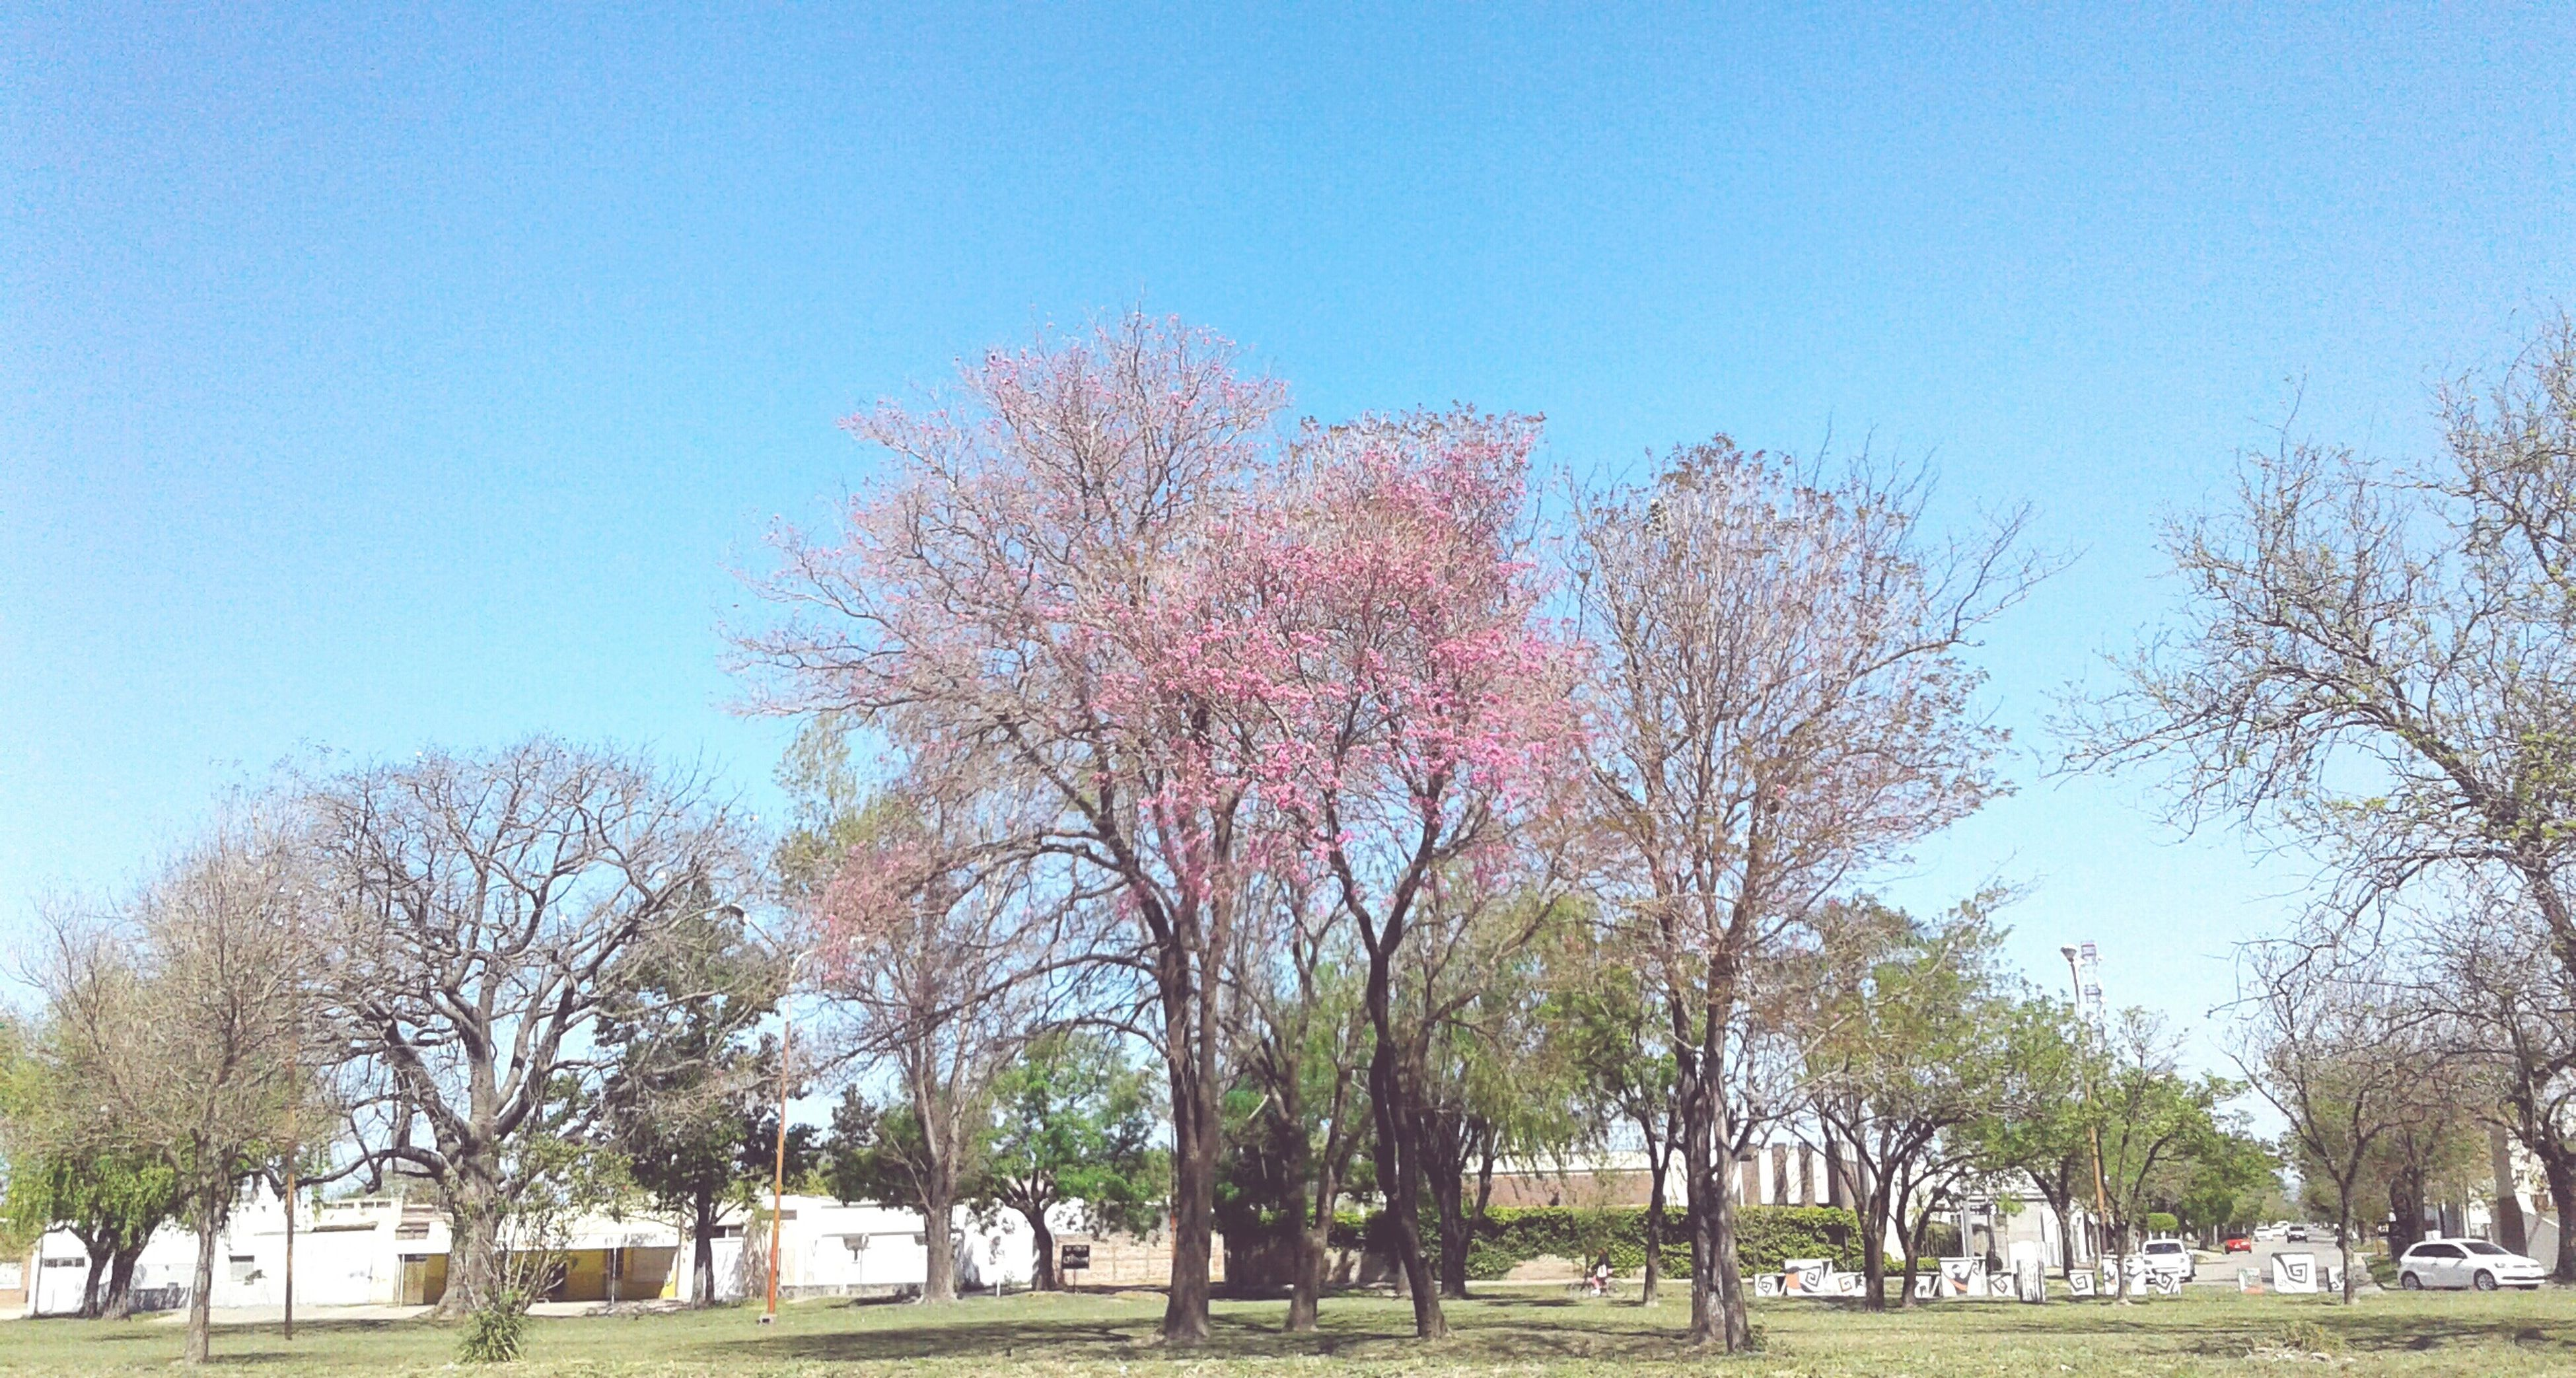 tree, grass, clear sky, blue, large group of people, landscape, park - man made space, day, growth, tranquility, lawn, nature, field, green, tranquil scene, green color, sunny, vacations, beauty in nature, outdoors, person, grassland, yard, solitude, cherry tree, countryside, cherry blossom, flower, park